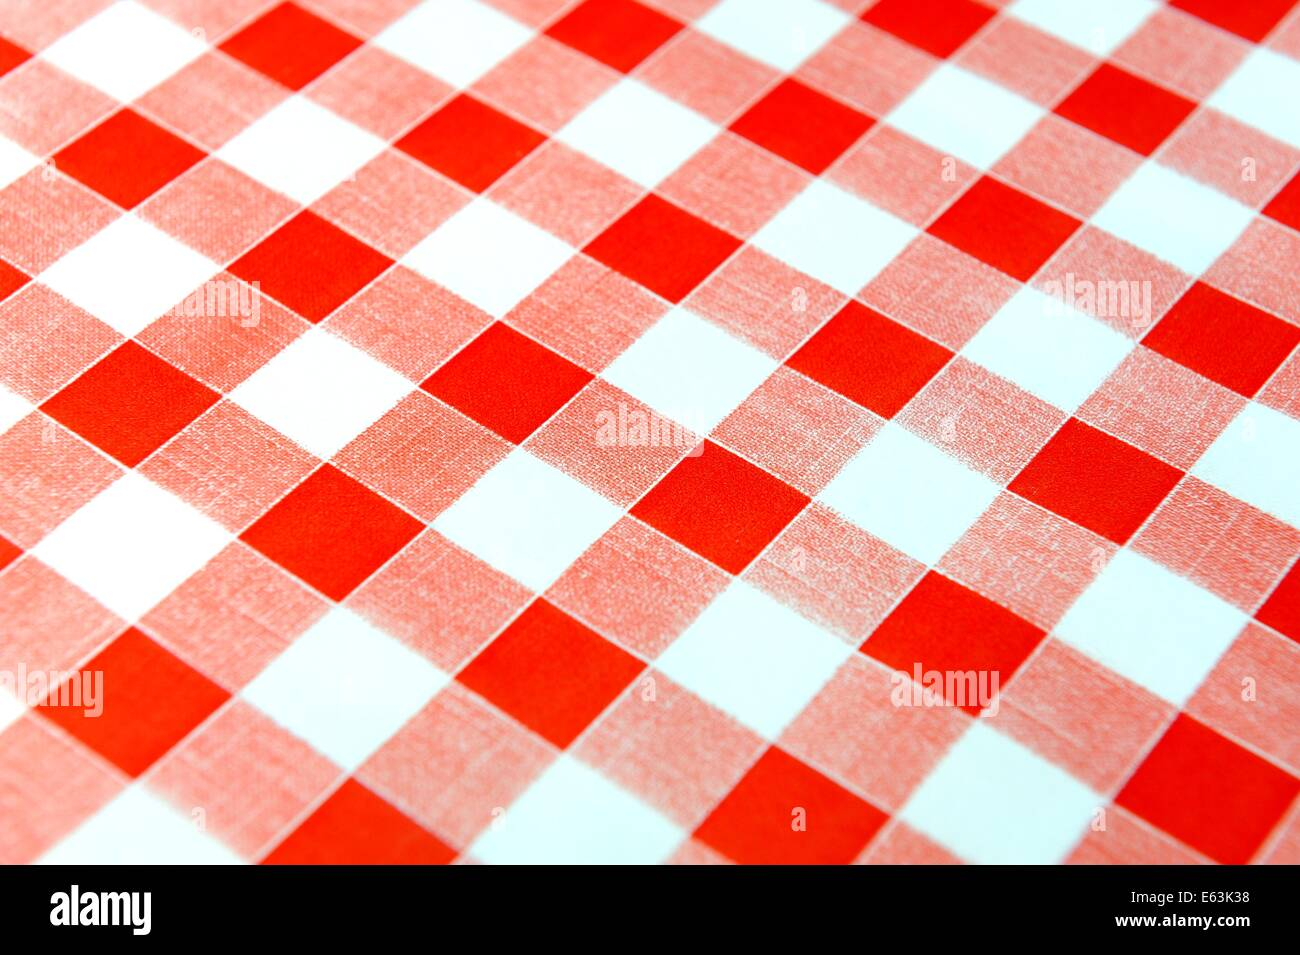 A red gingham tablecloth background - Stock Image